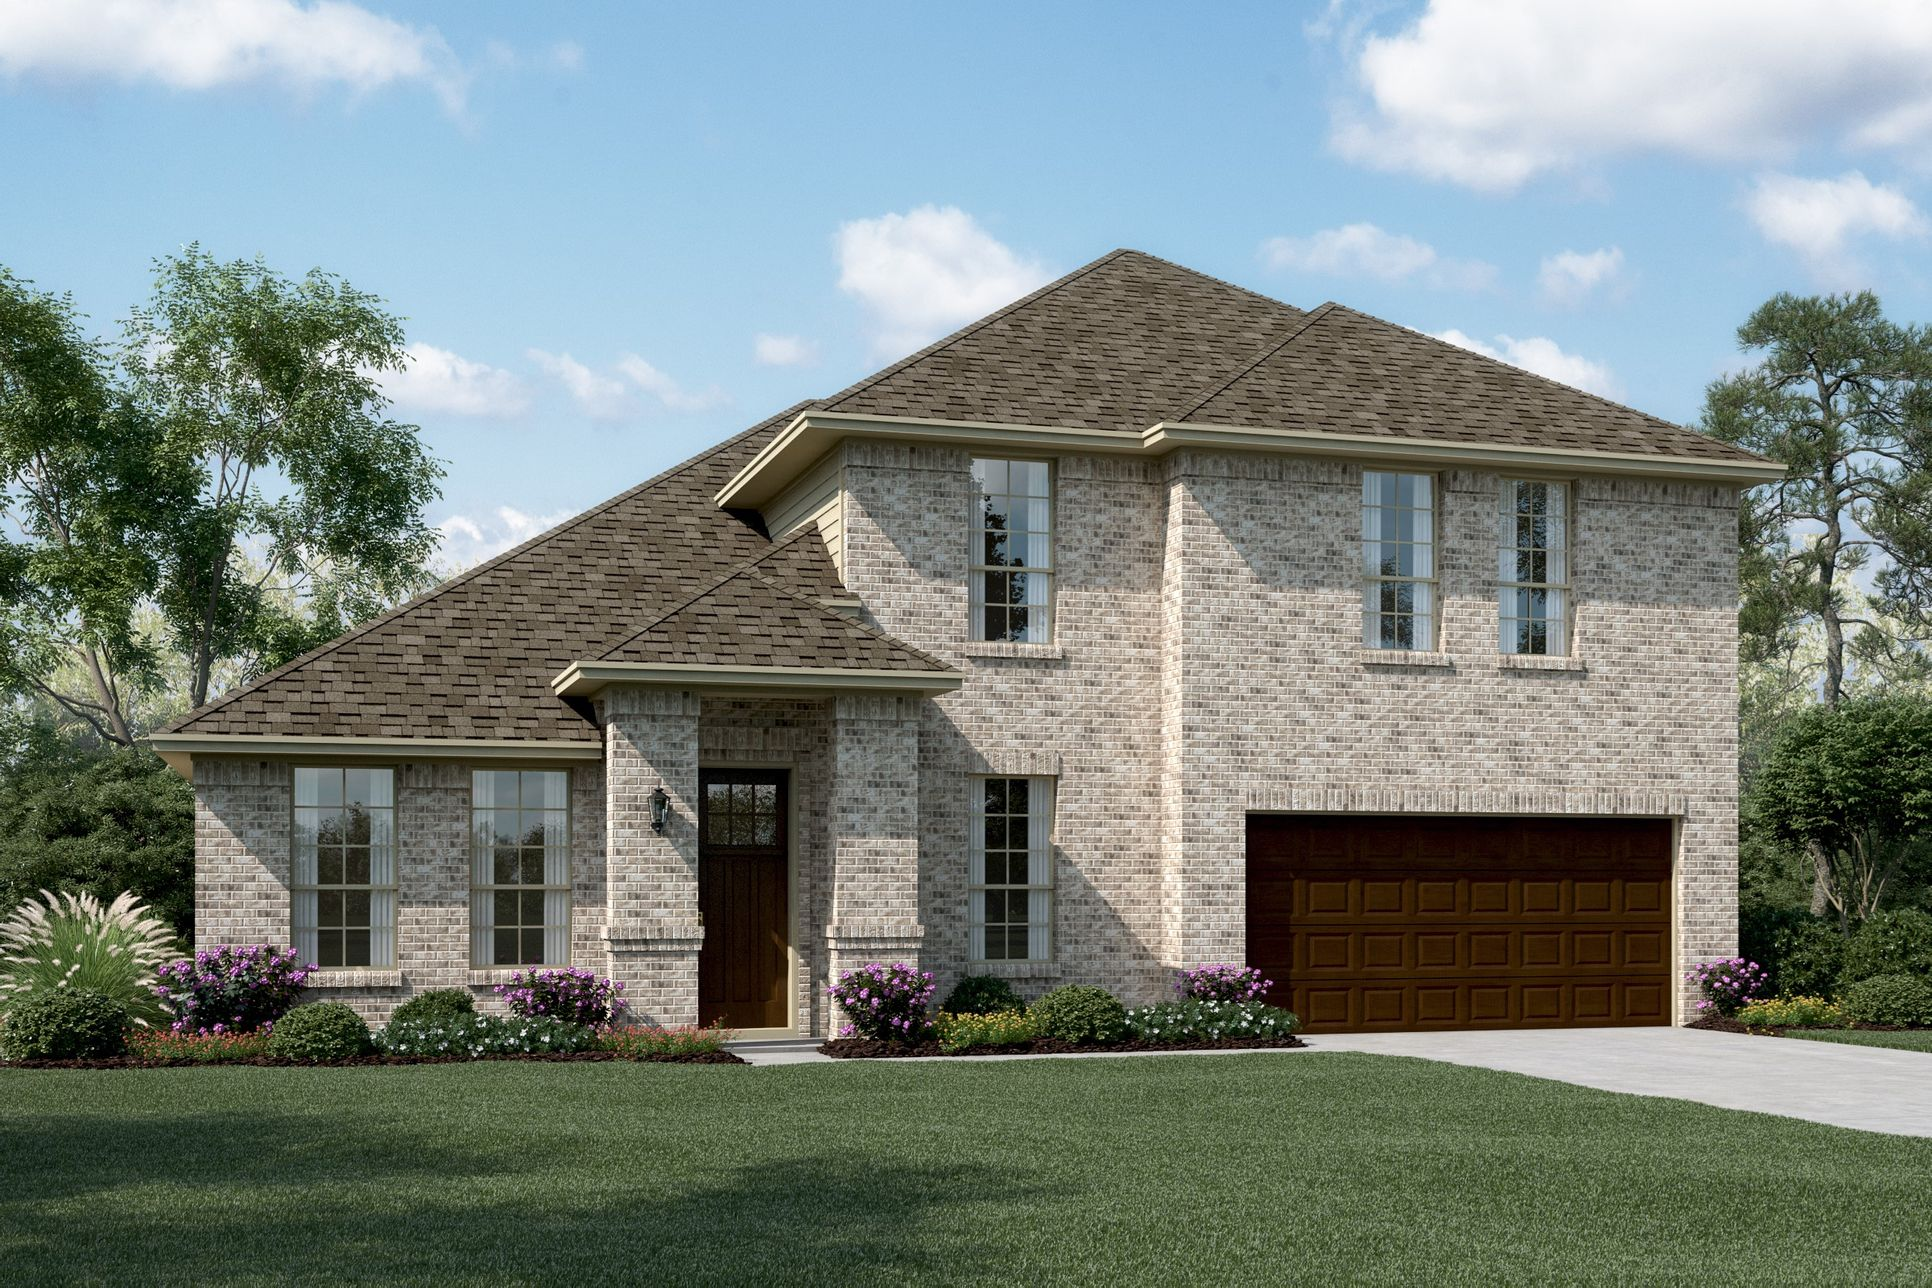 Exterior:Brentwood II - A